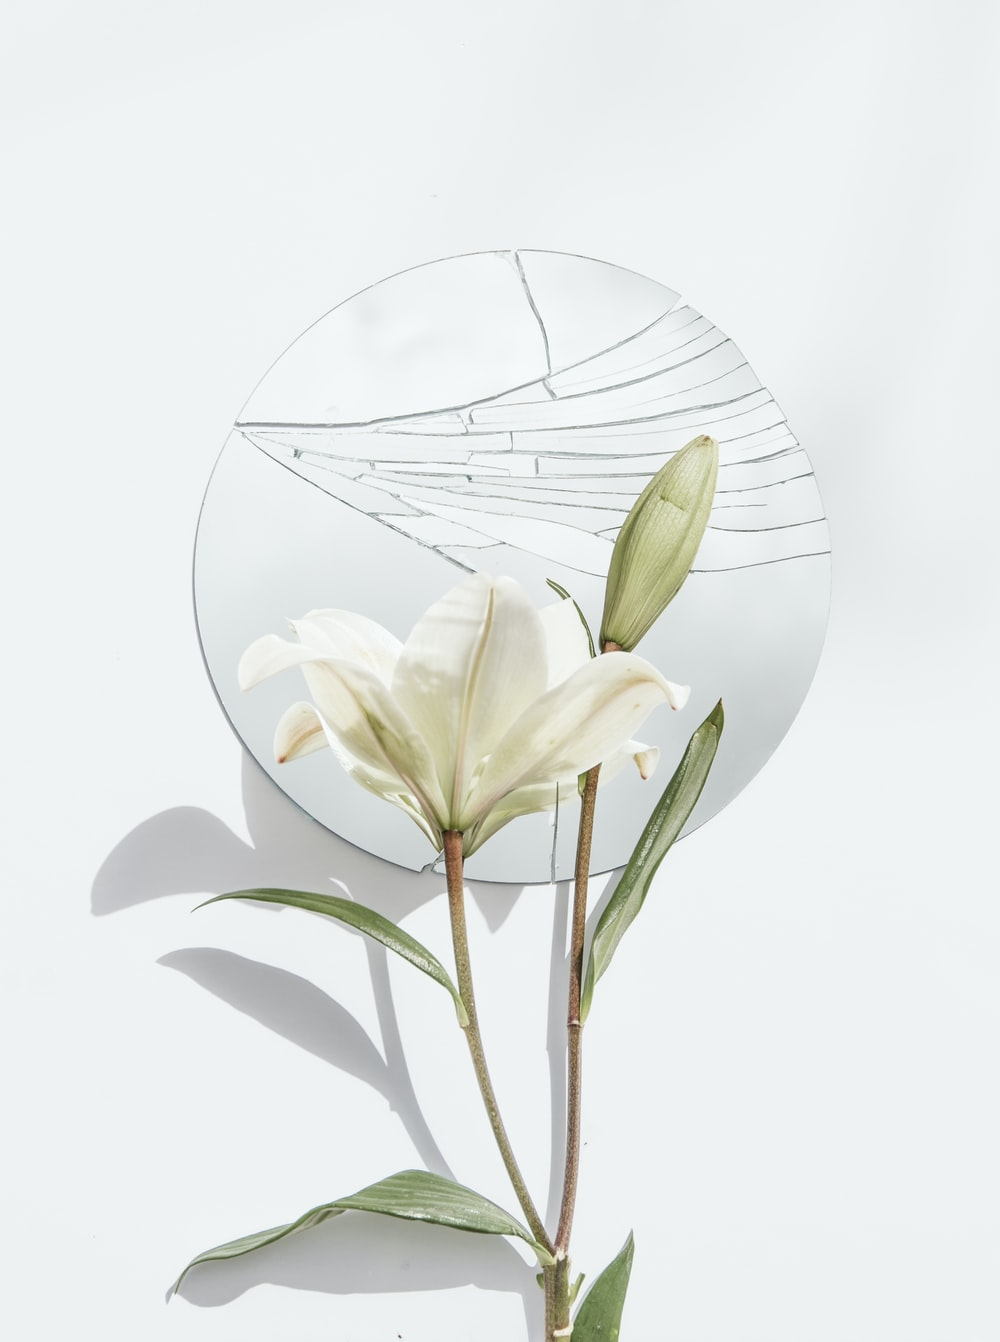 white petaled flower and mirror